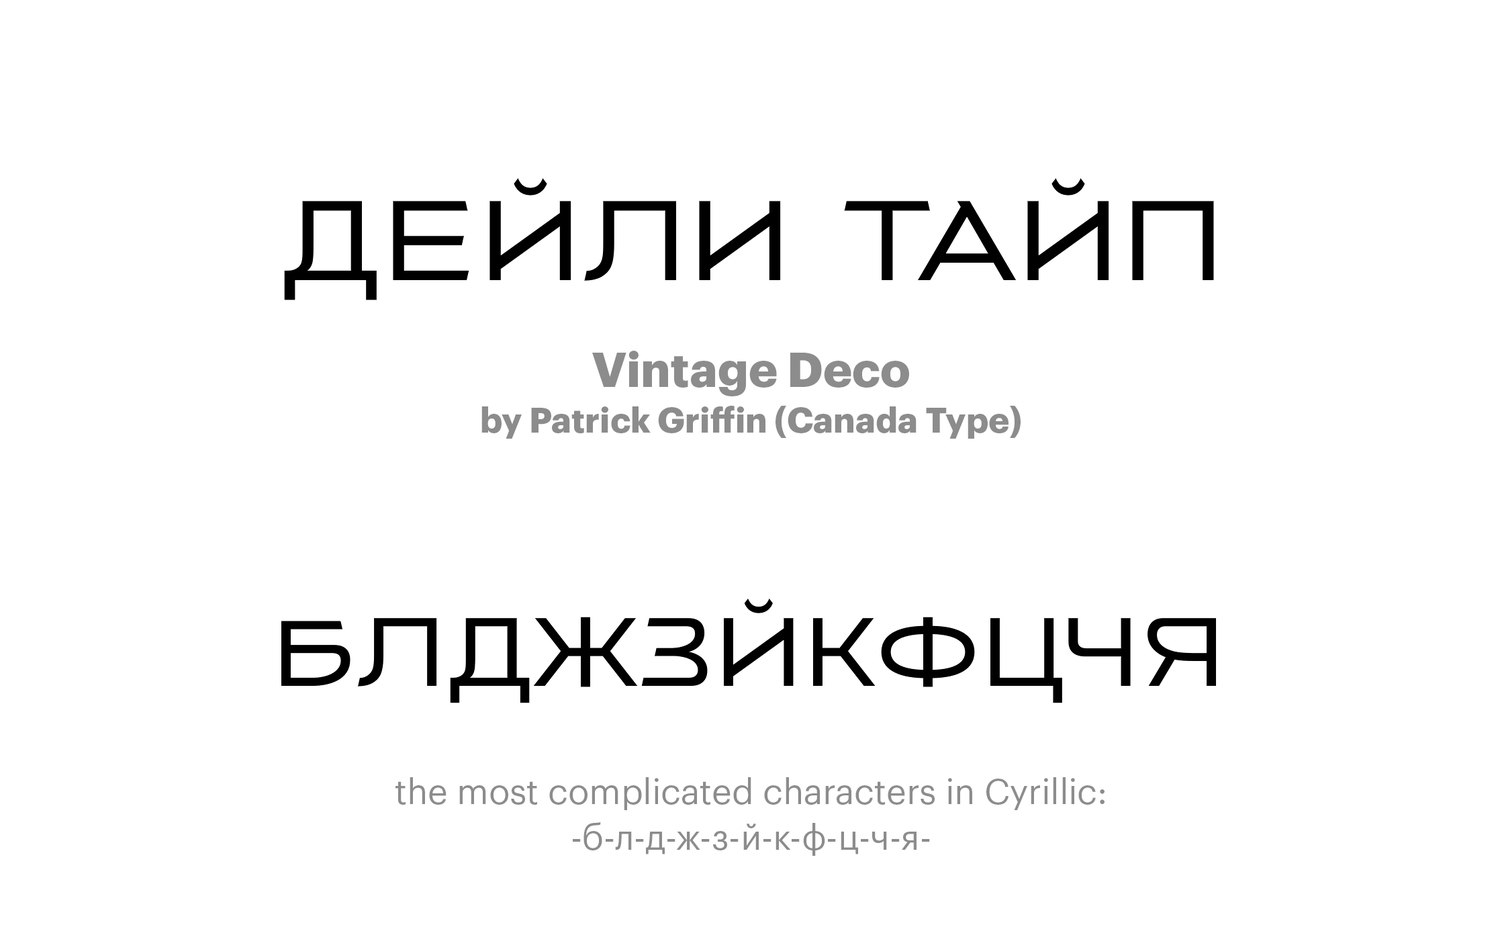 Vintage-Deco-by-Patrick-Griffin-(Canada-Type)